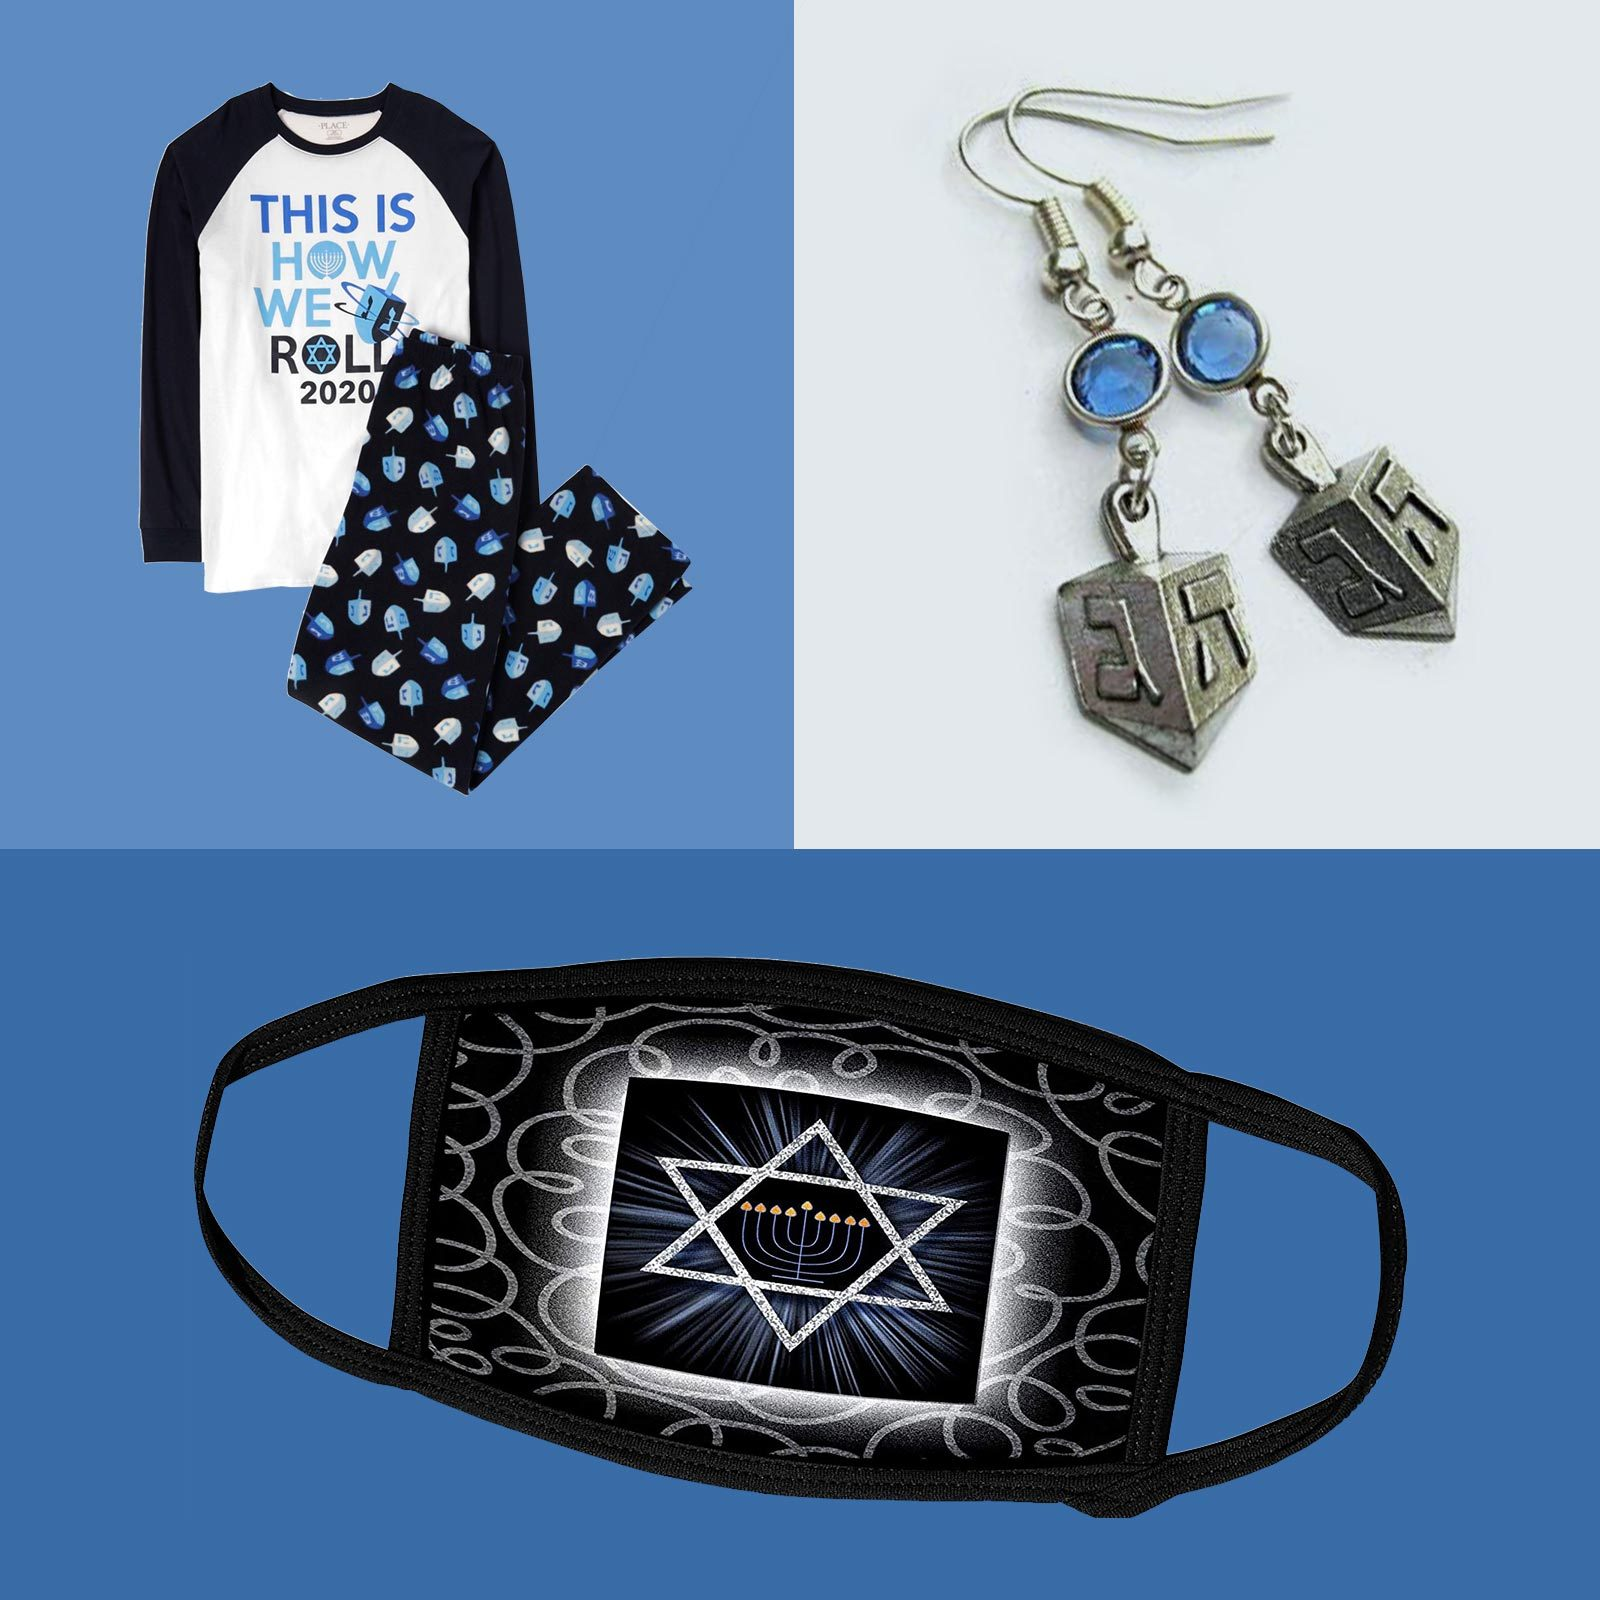 25 Best Hanukkah-Themed Gifts